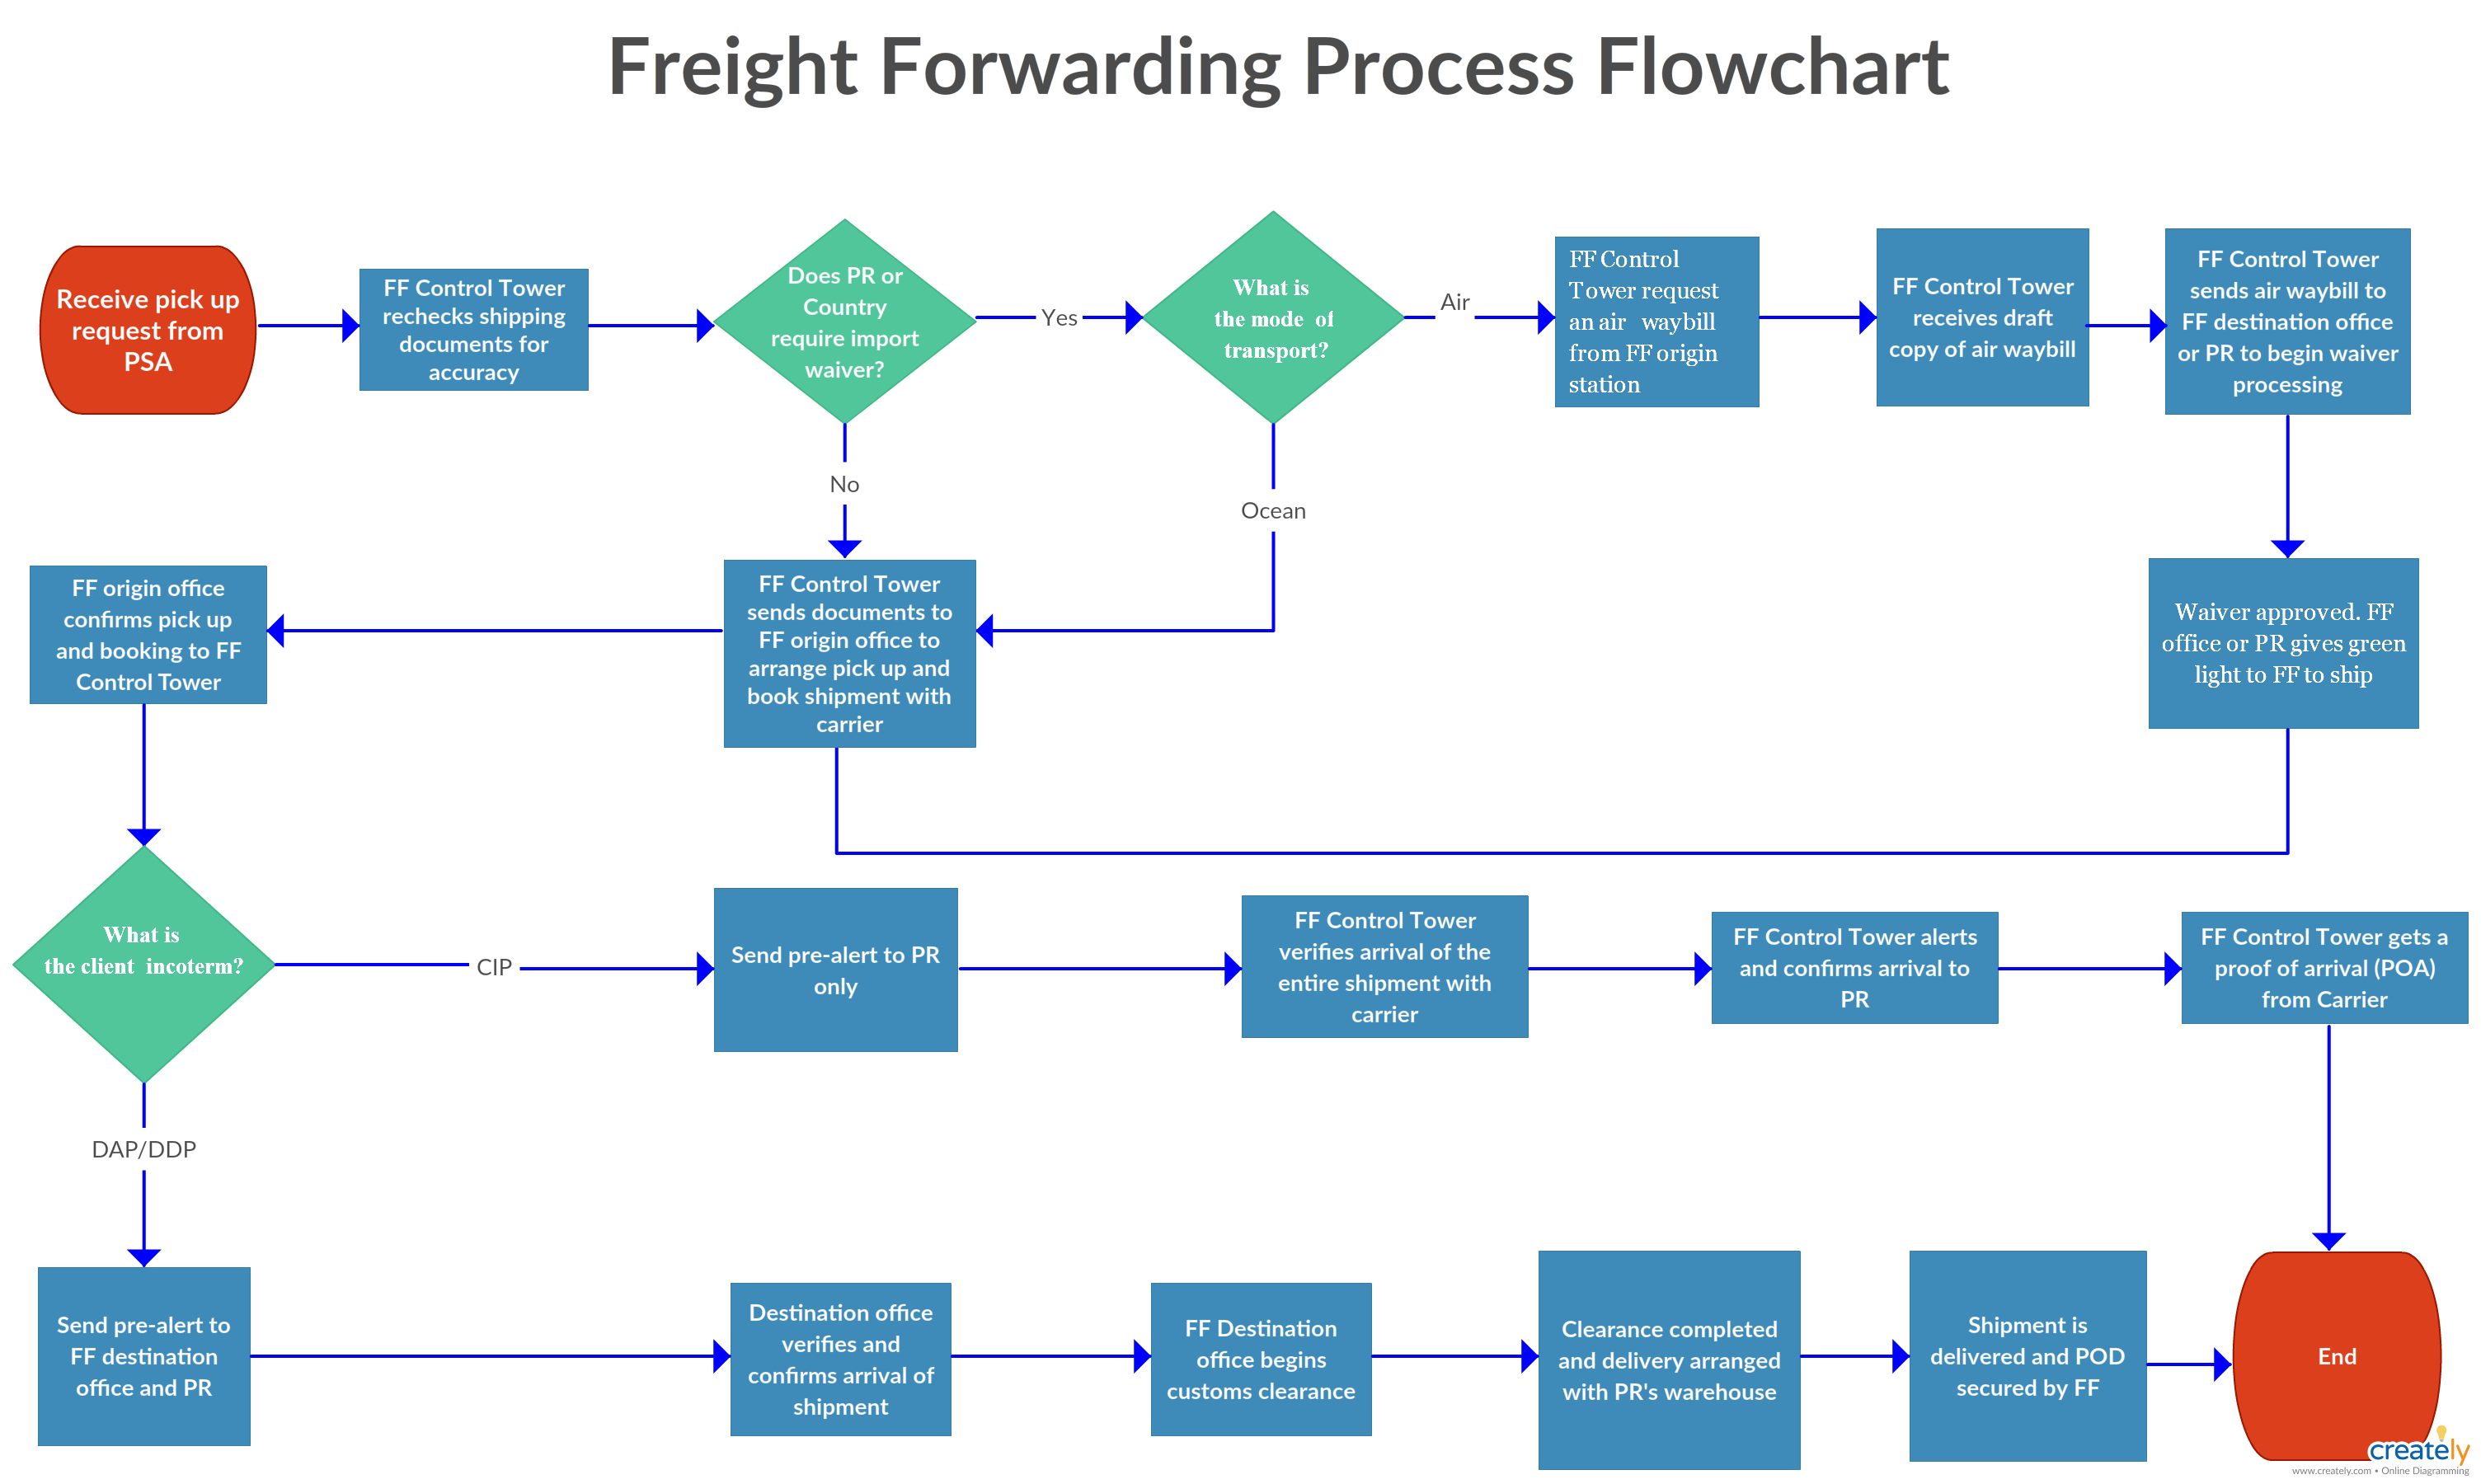 medium resolution of freight forwarding process flowchart the freight forwarding process is the flow of shipment and goods from two destinations carried out by a freight